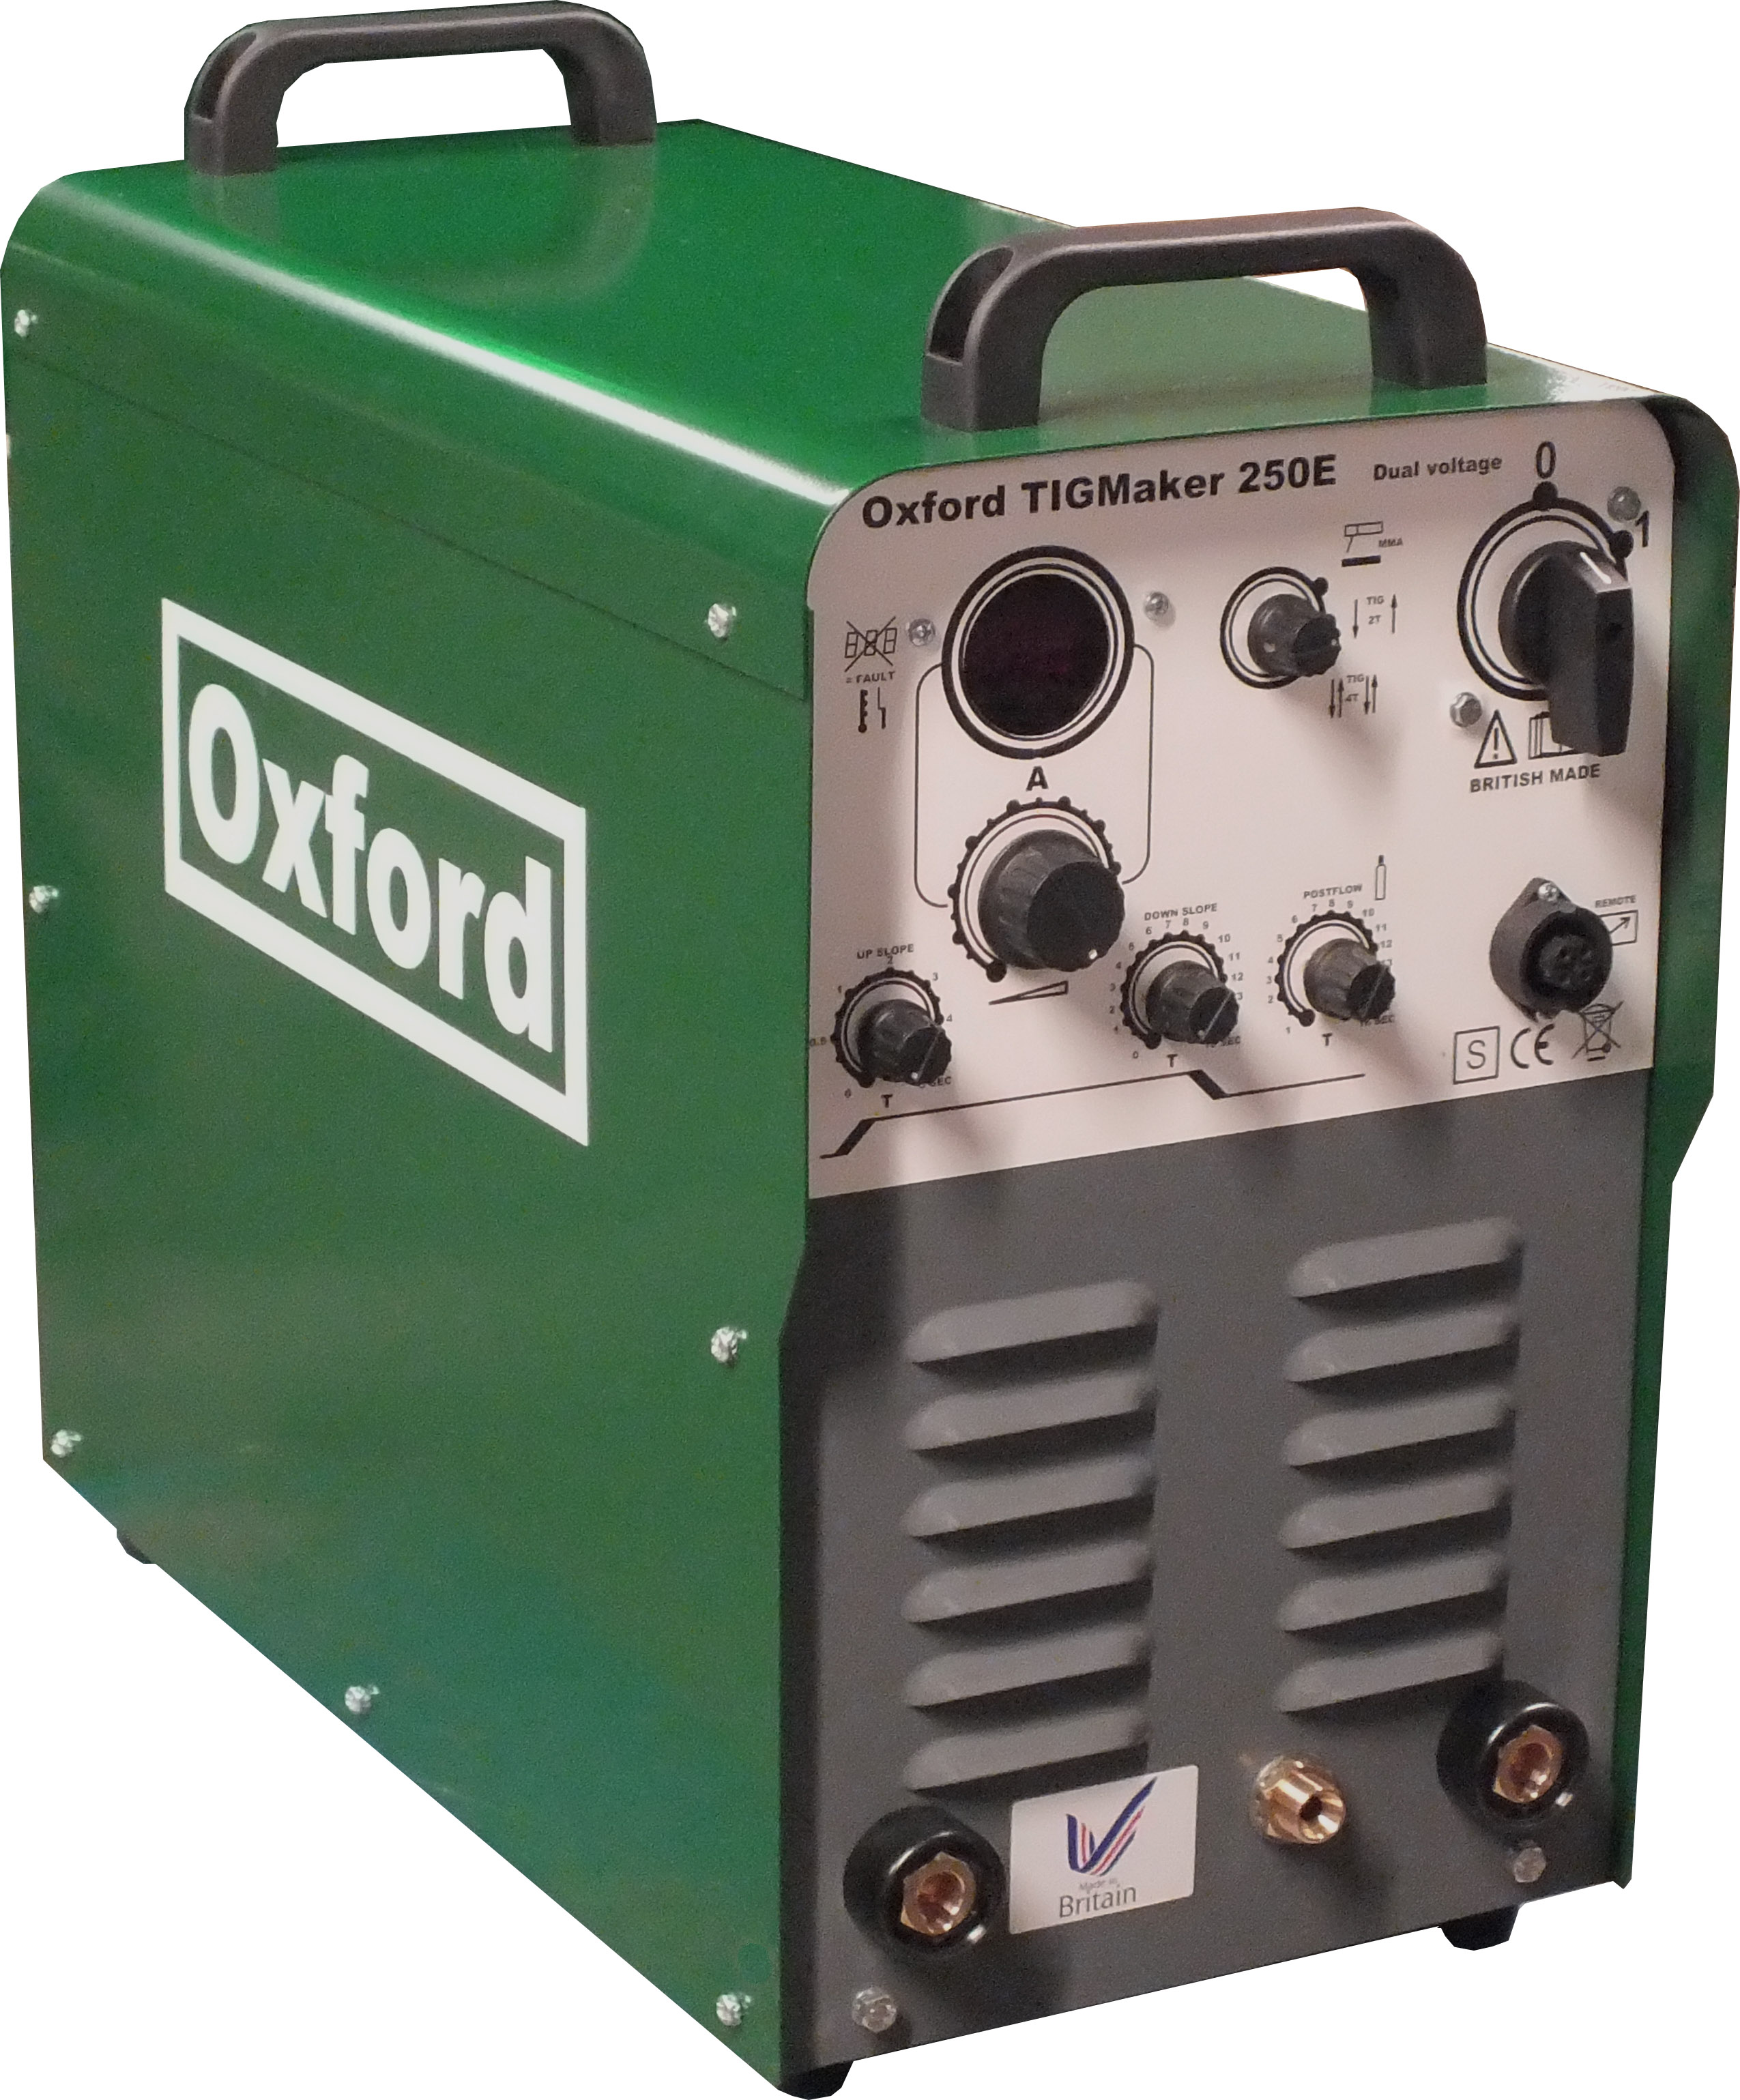 Oxford  TIGMaker 250E dual voltage 230/400V Image